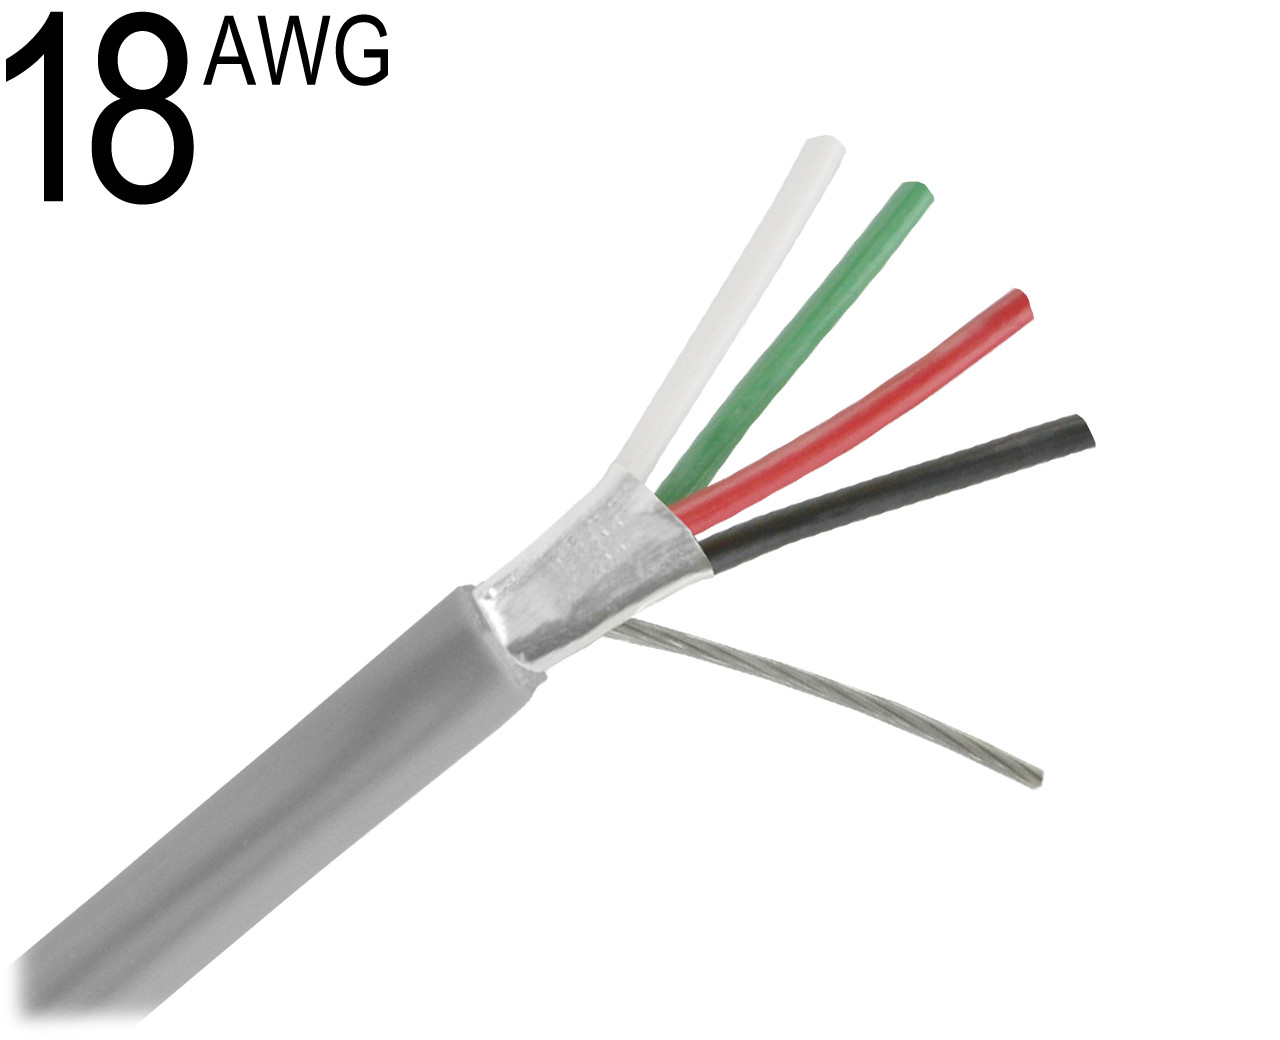 Shielded Multiconductor Cable 18 Awg